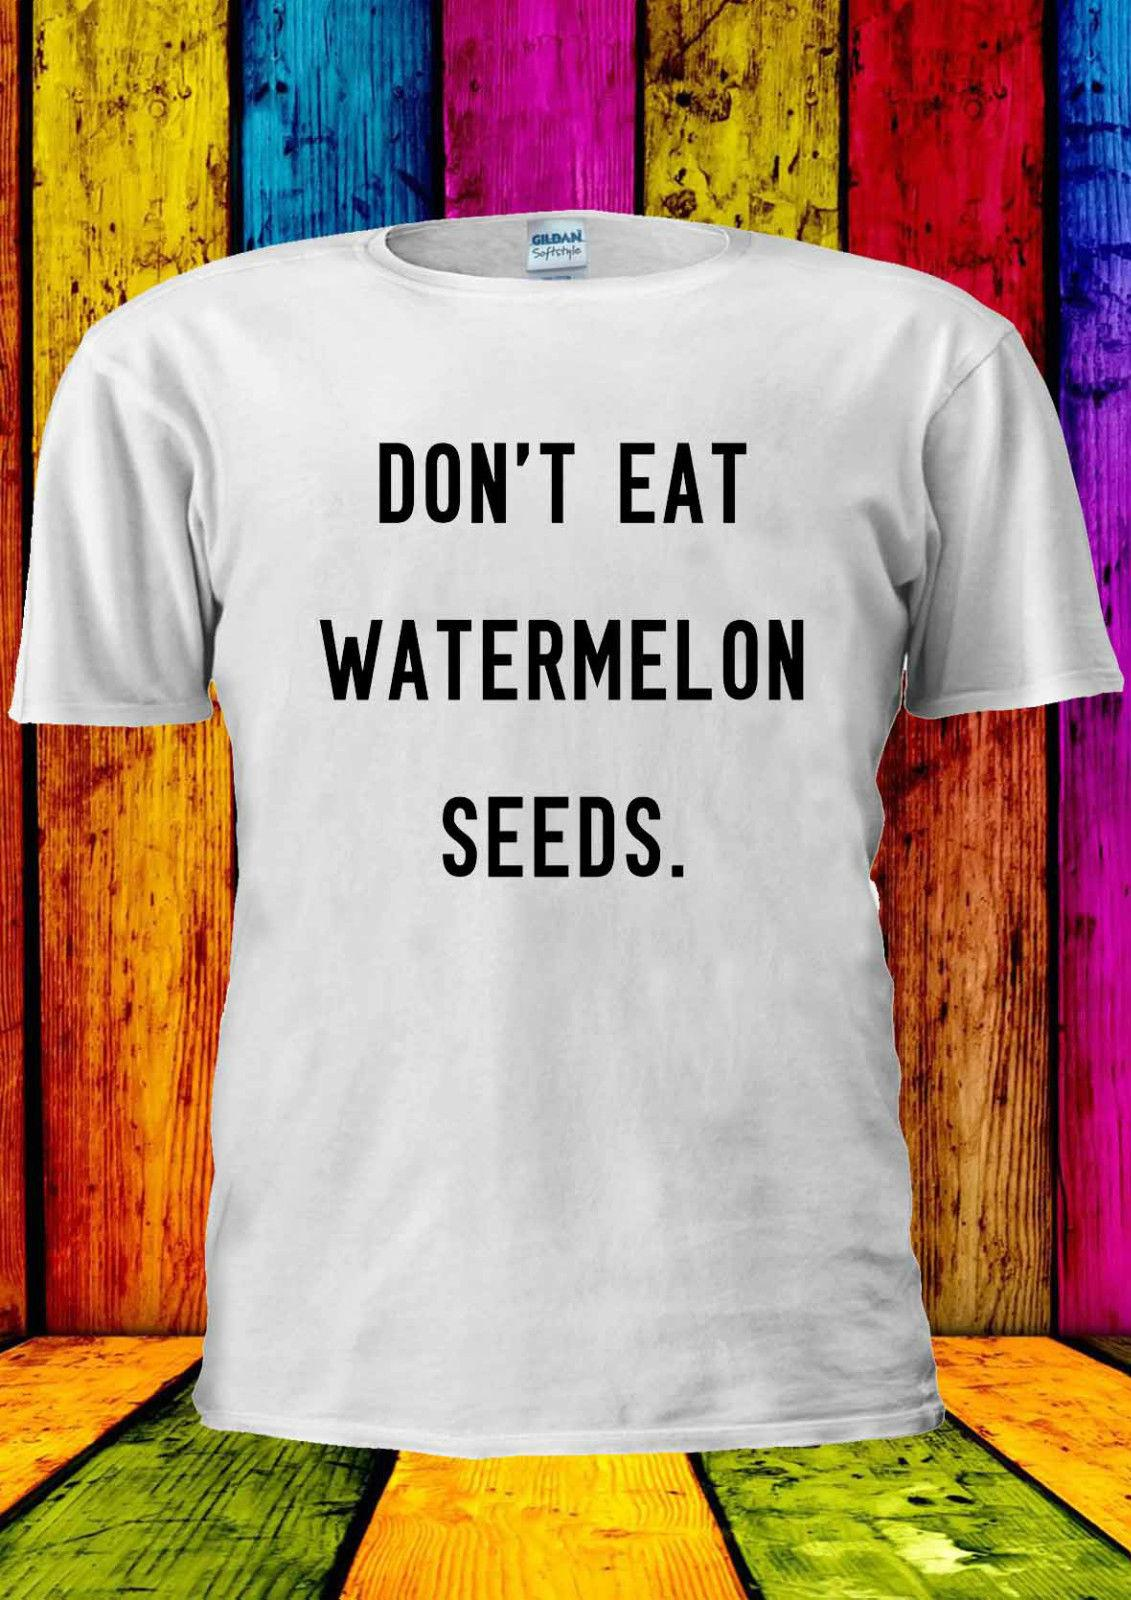 adad500490 Don't Eat Watermelon Seed Funny T-shirt Vest Tank Top Men Women Unisex 1379  Funny free shipping Casual Tshirt top